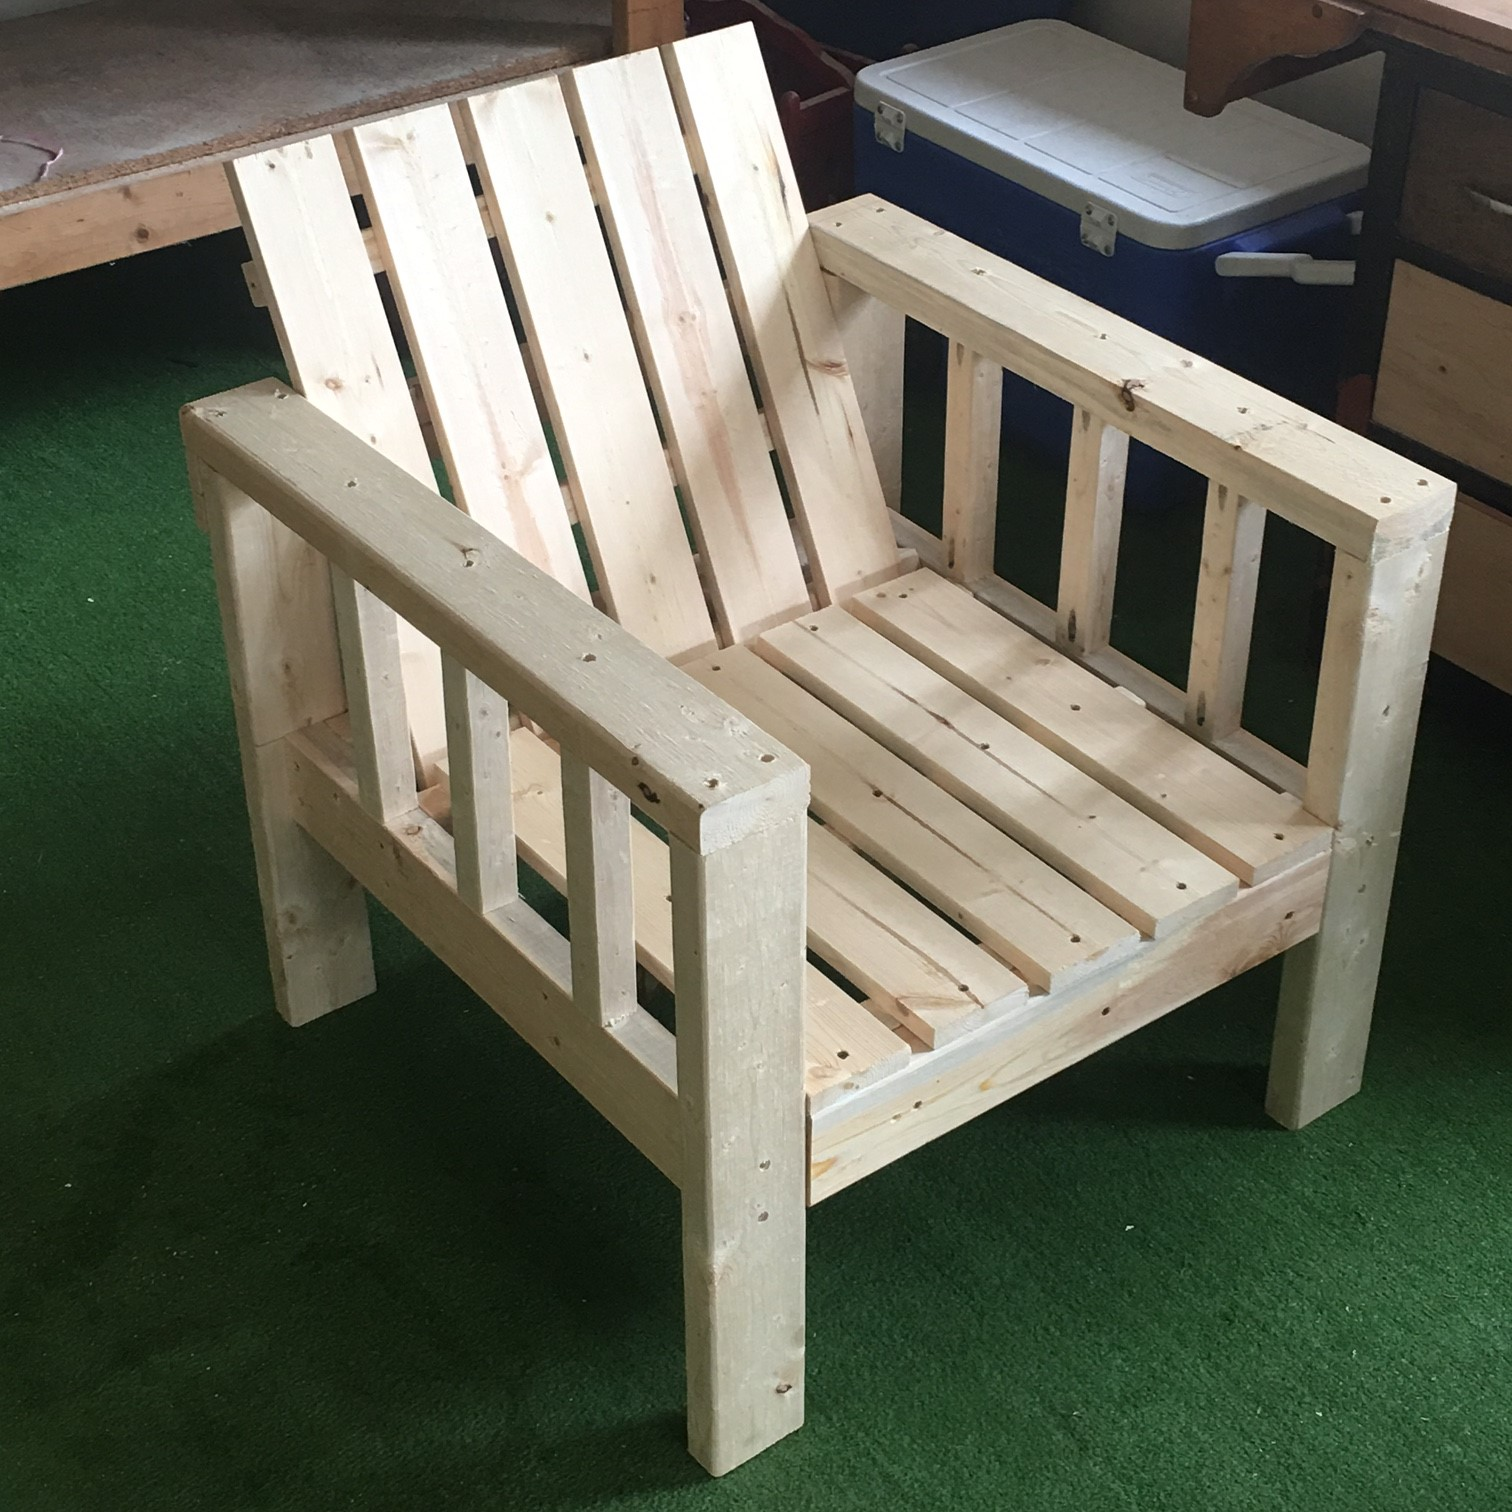 Ana White My Simple Outdoor Lounge Chair With 2x4 Modification Diy Projects